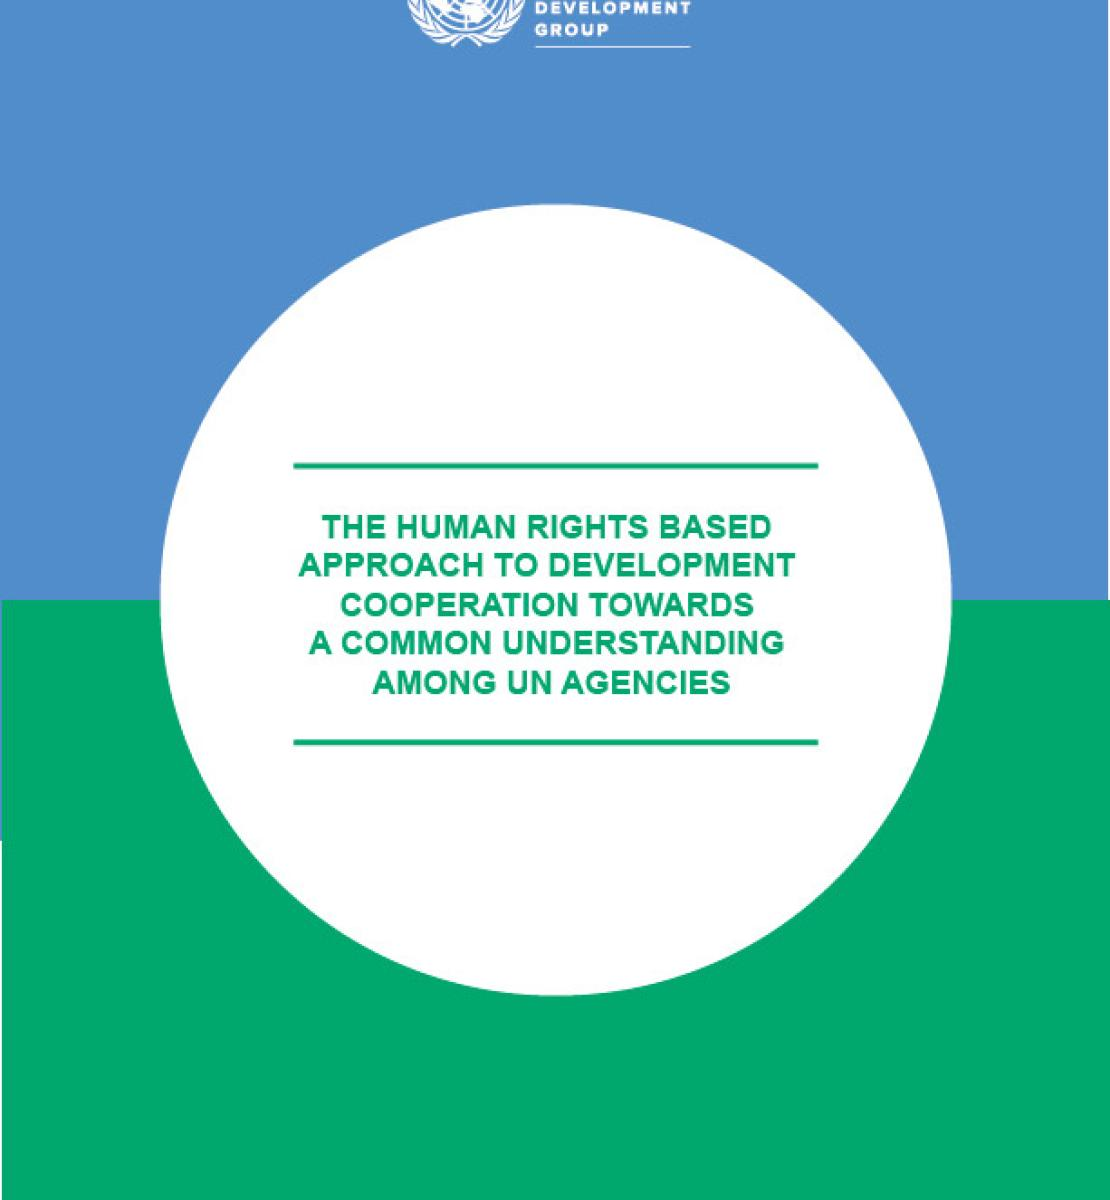 The Human Rights Based Approach to Development Cooperation Towards a Common Understanding Among UN Agencies